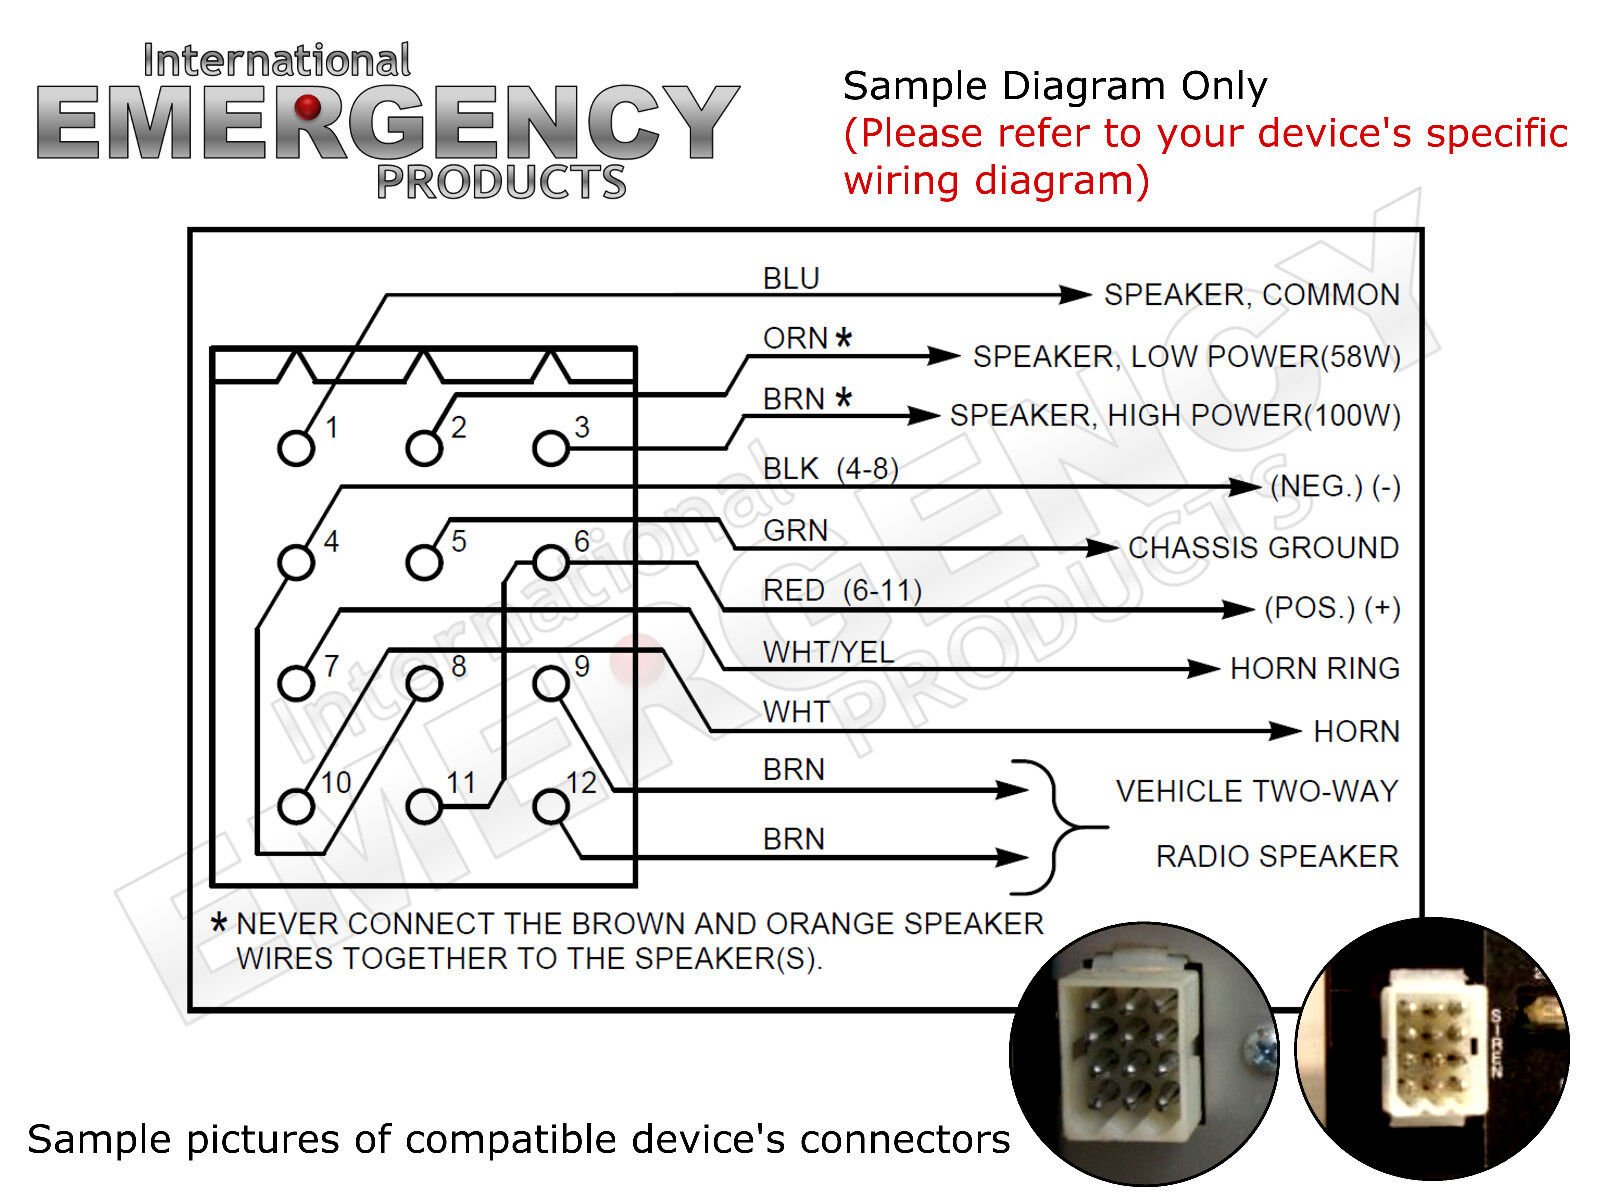 hight resolution of 12 pin connector plug harness power cable for federal signal siren pa 300 ss2000